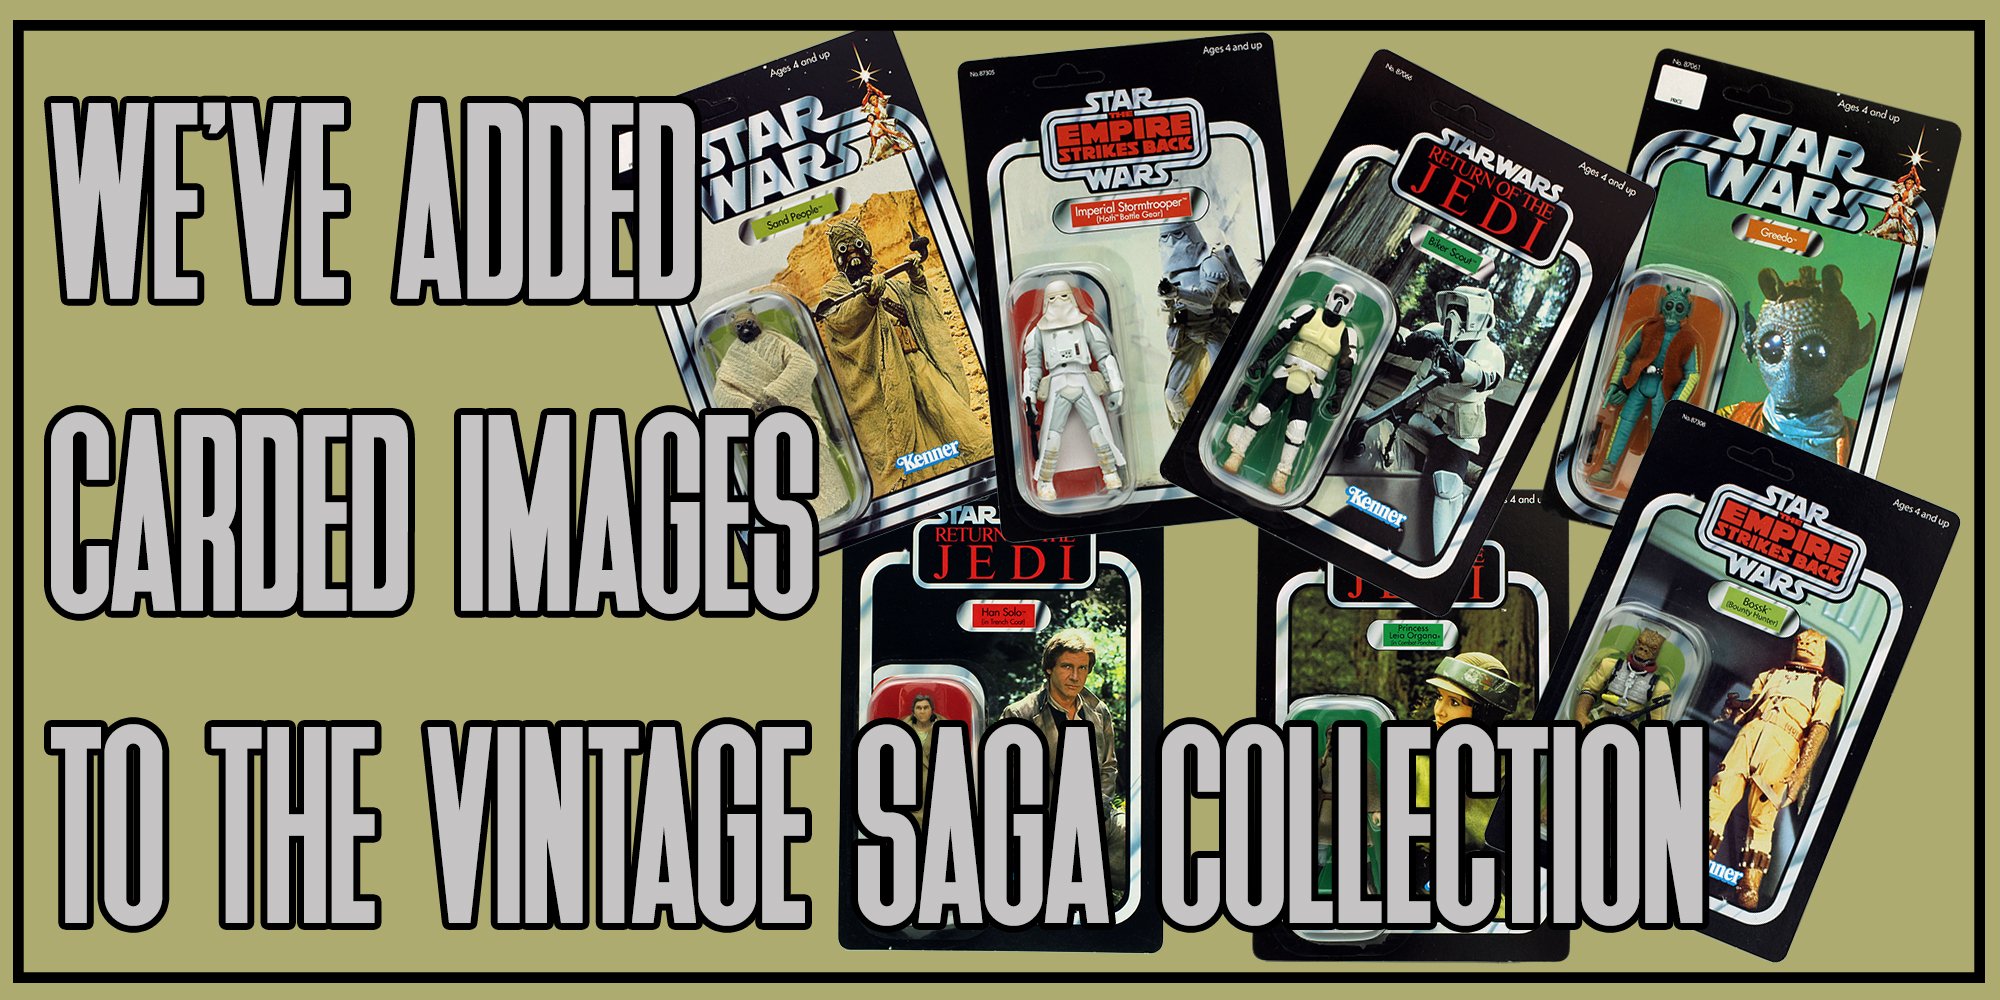 The Vintage SAGA Collection